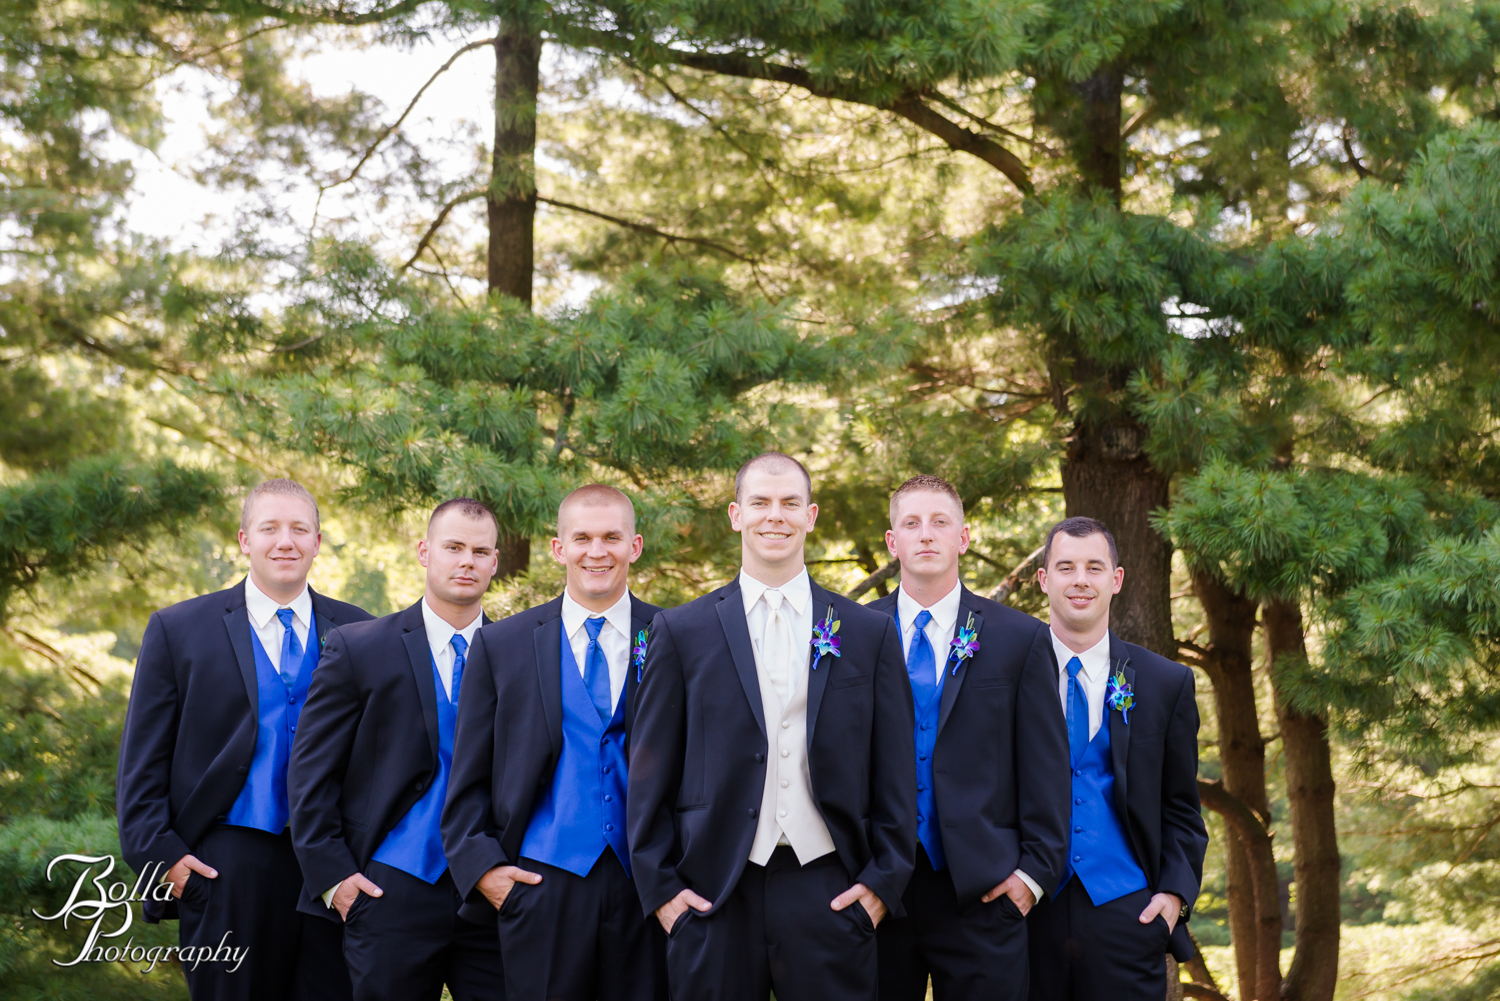 Bolla_Photography_St_Louis_wedding_photographer_Edwardsville_Highland-0337.jpg